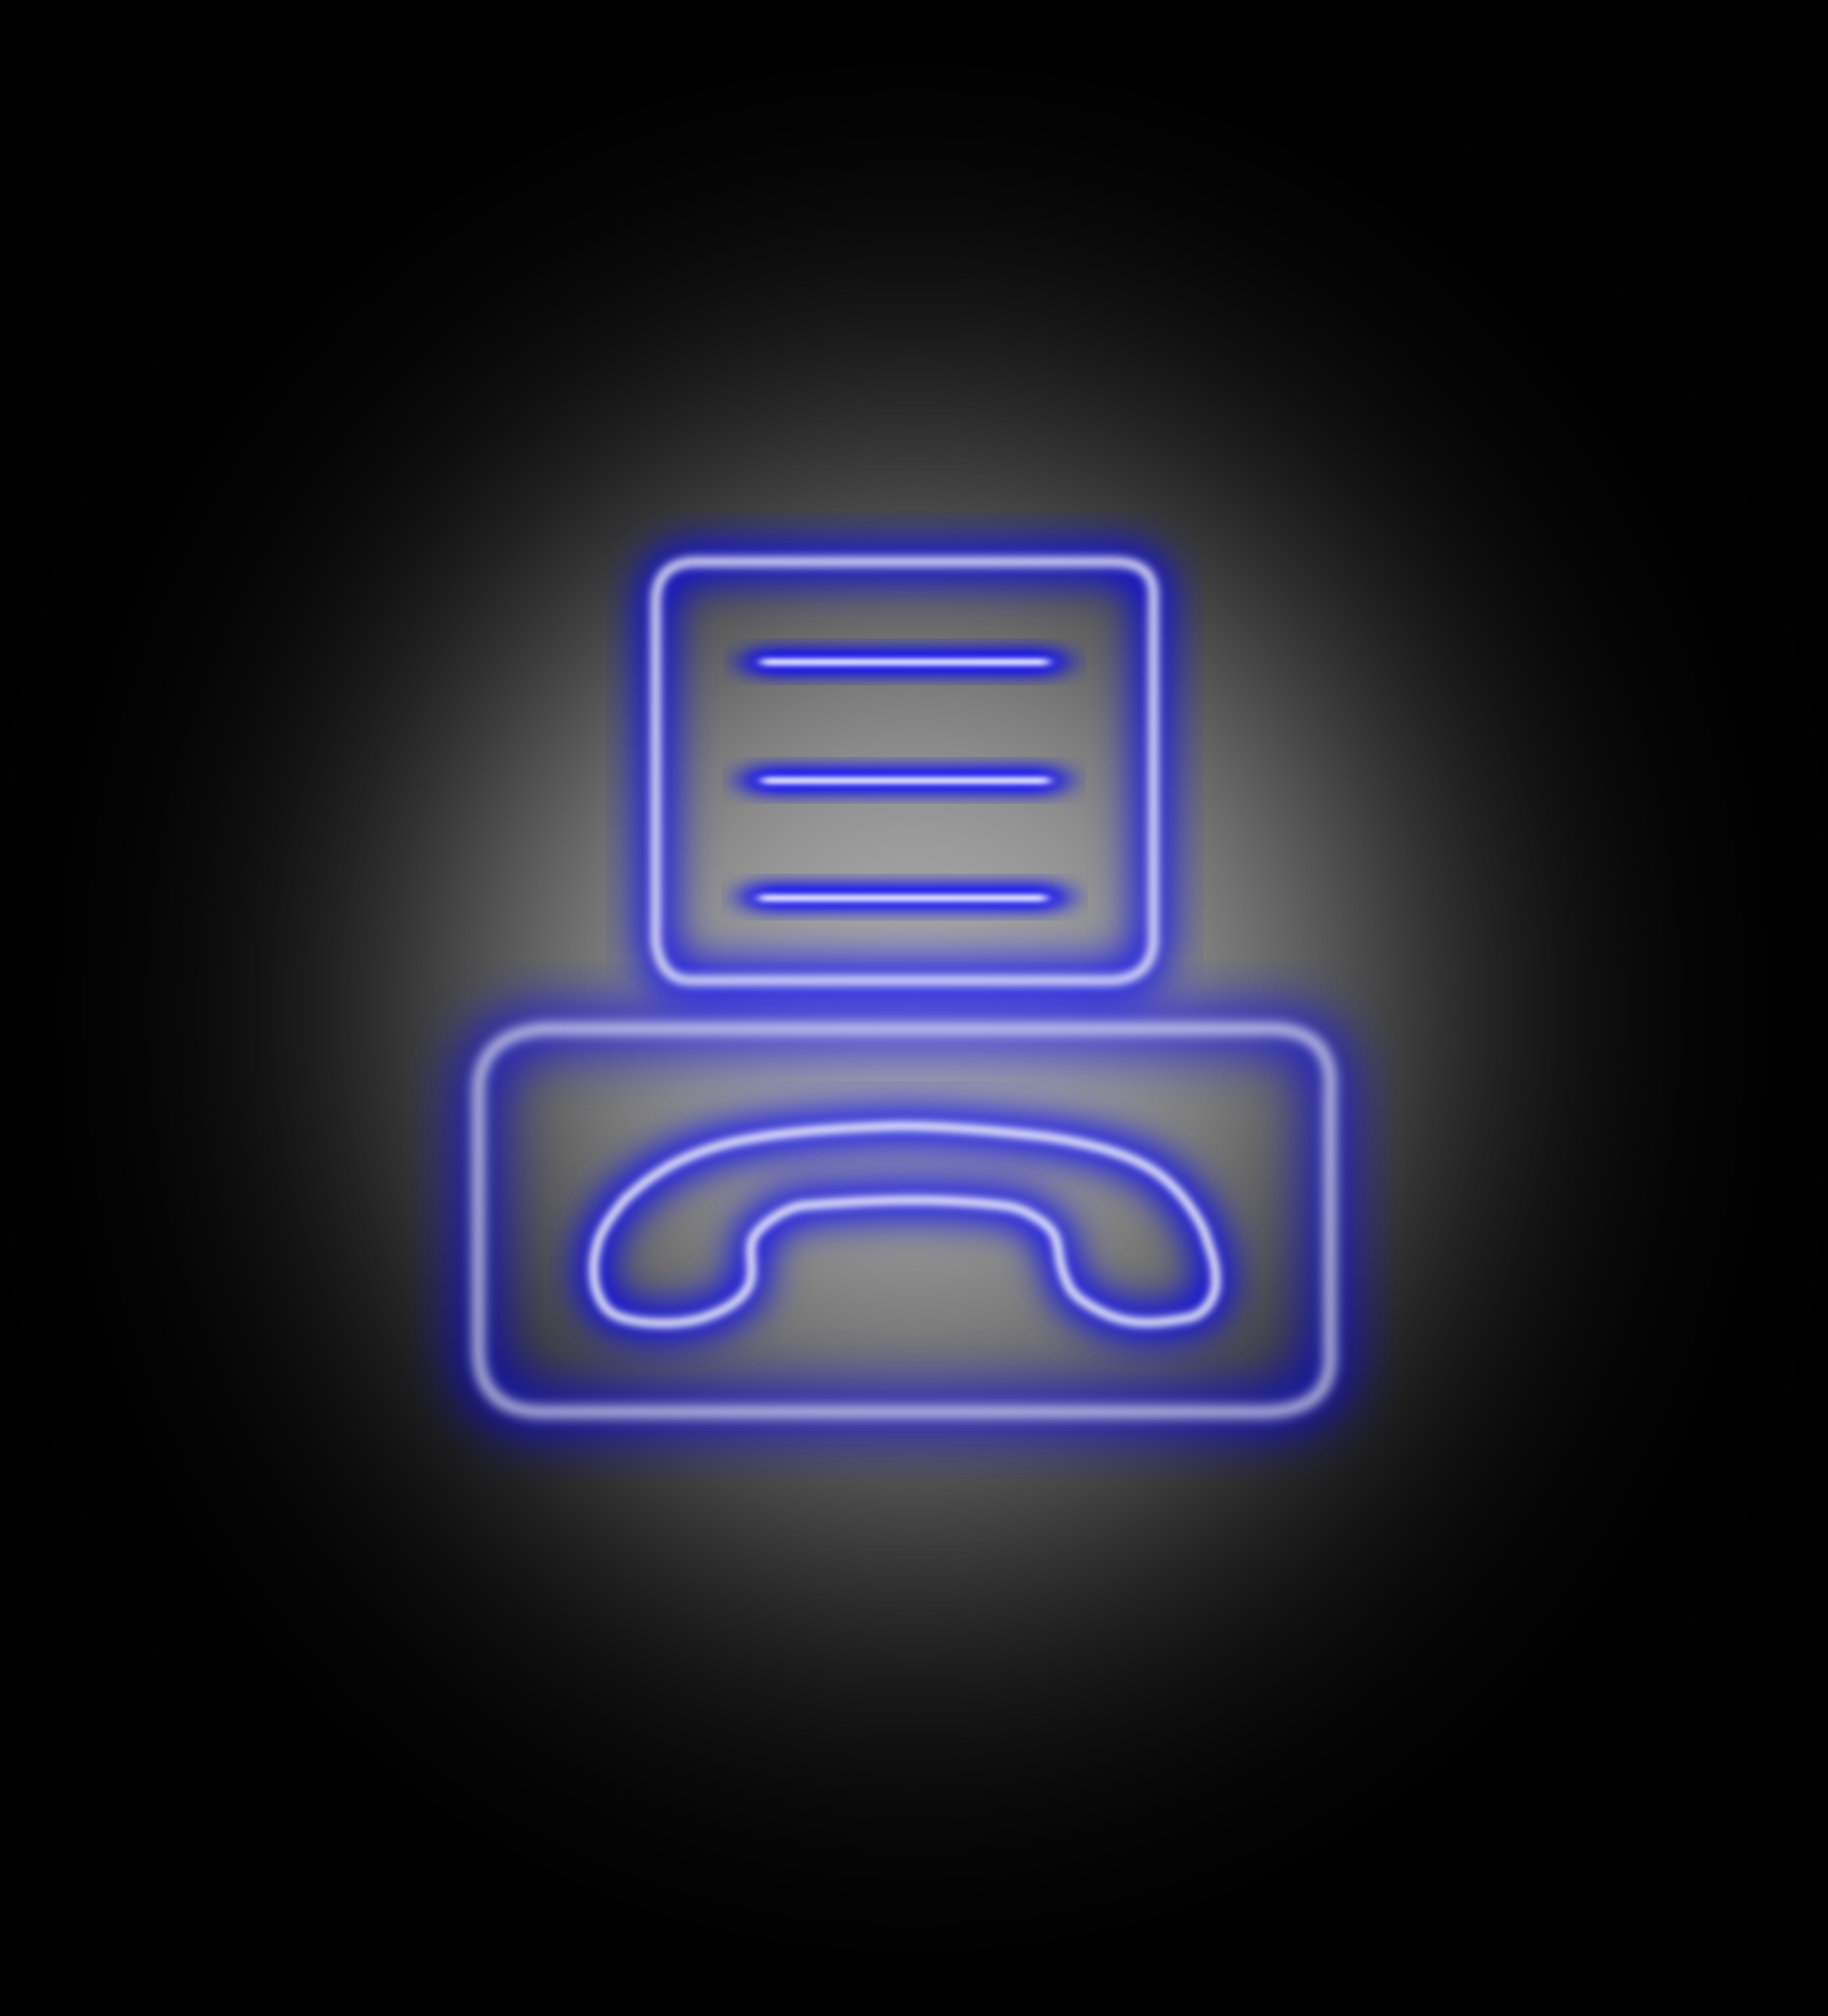 neon-fax-icon by rampa